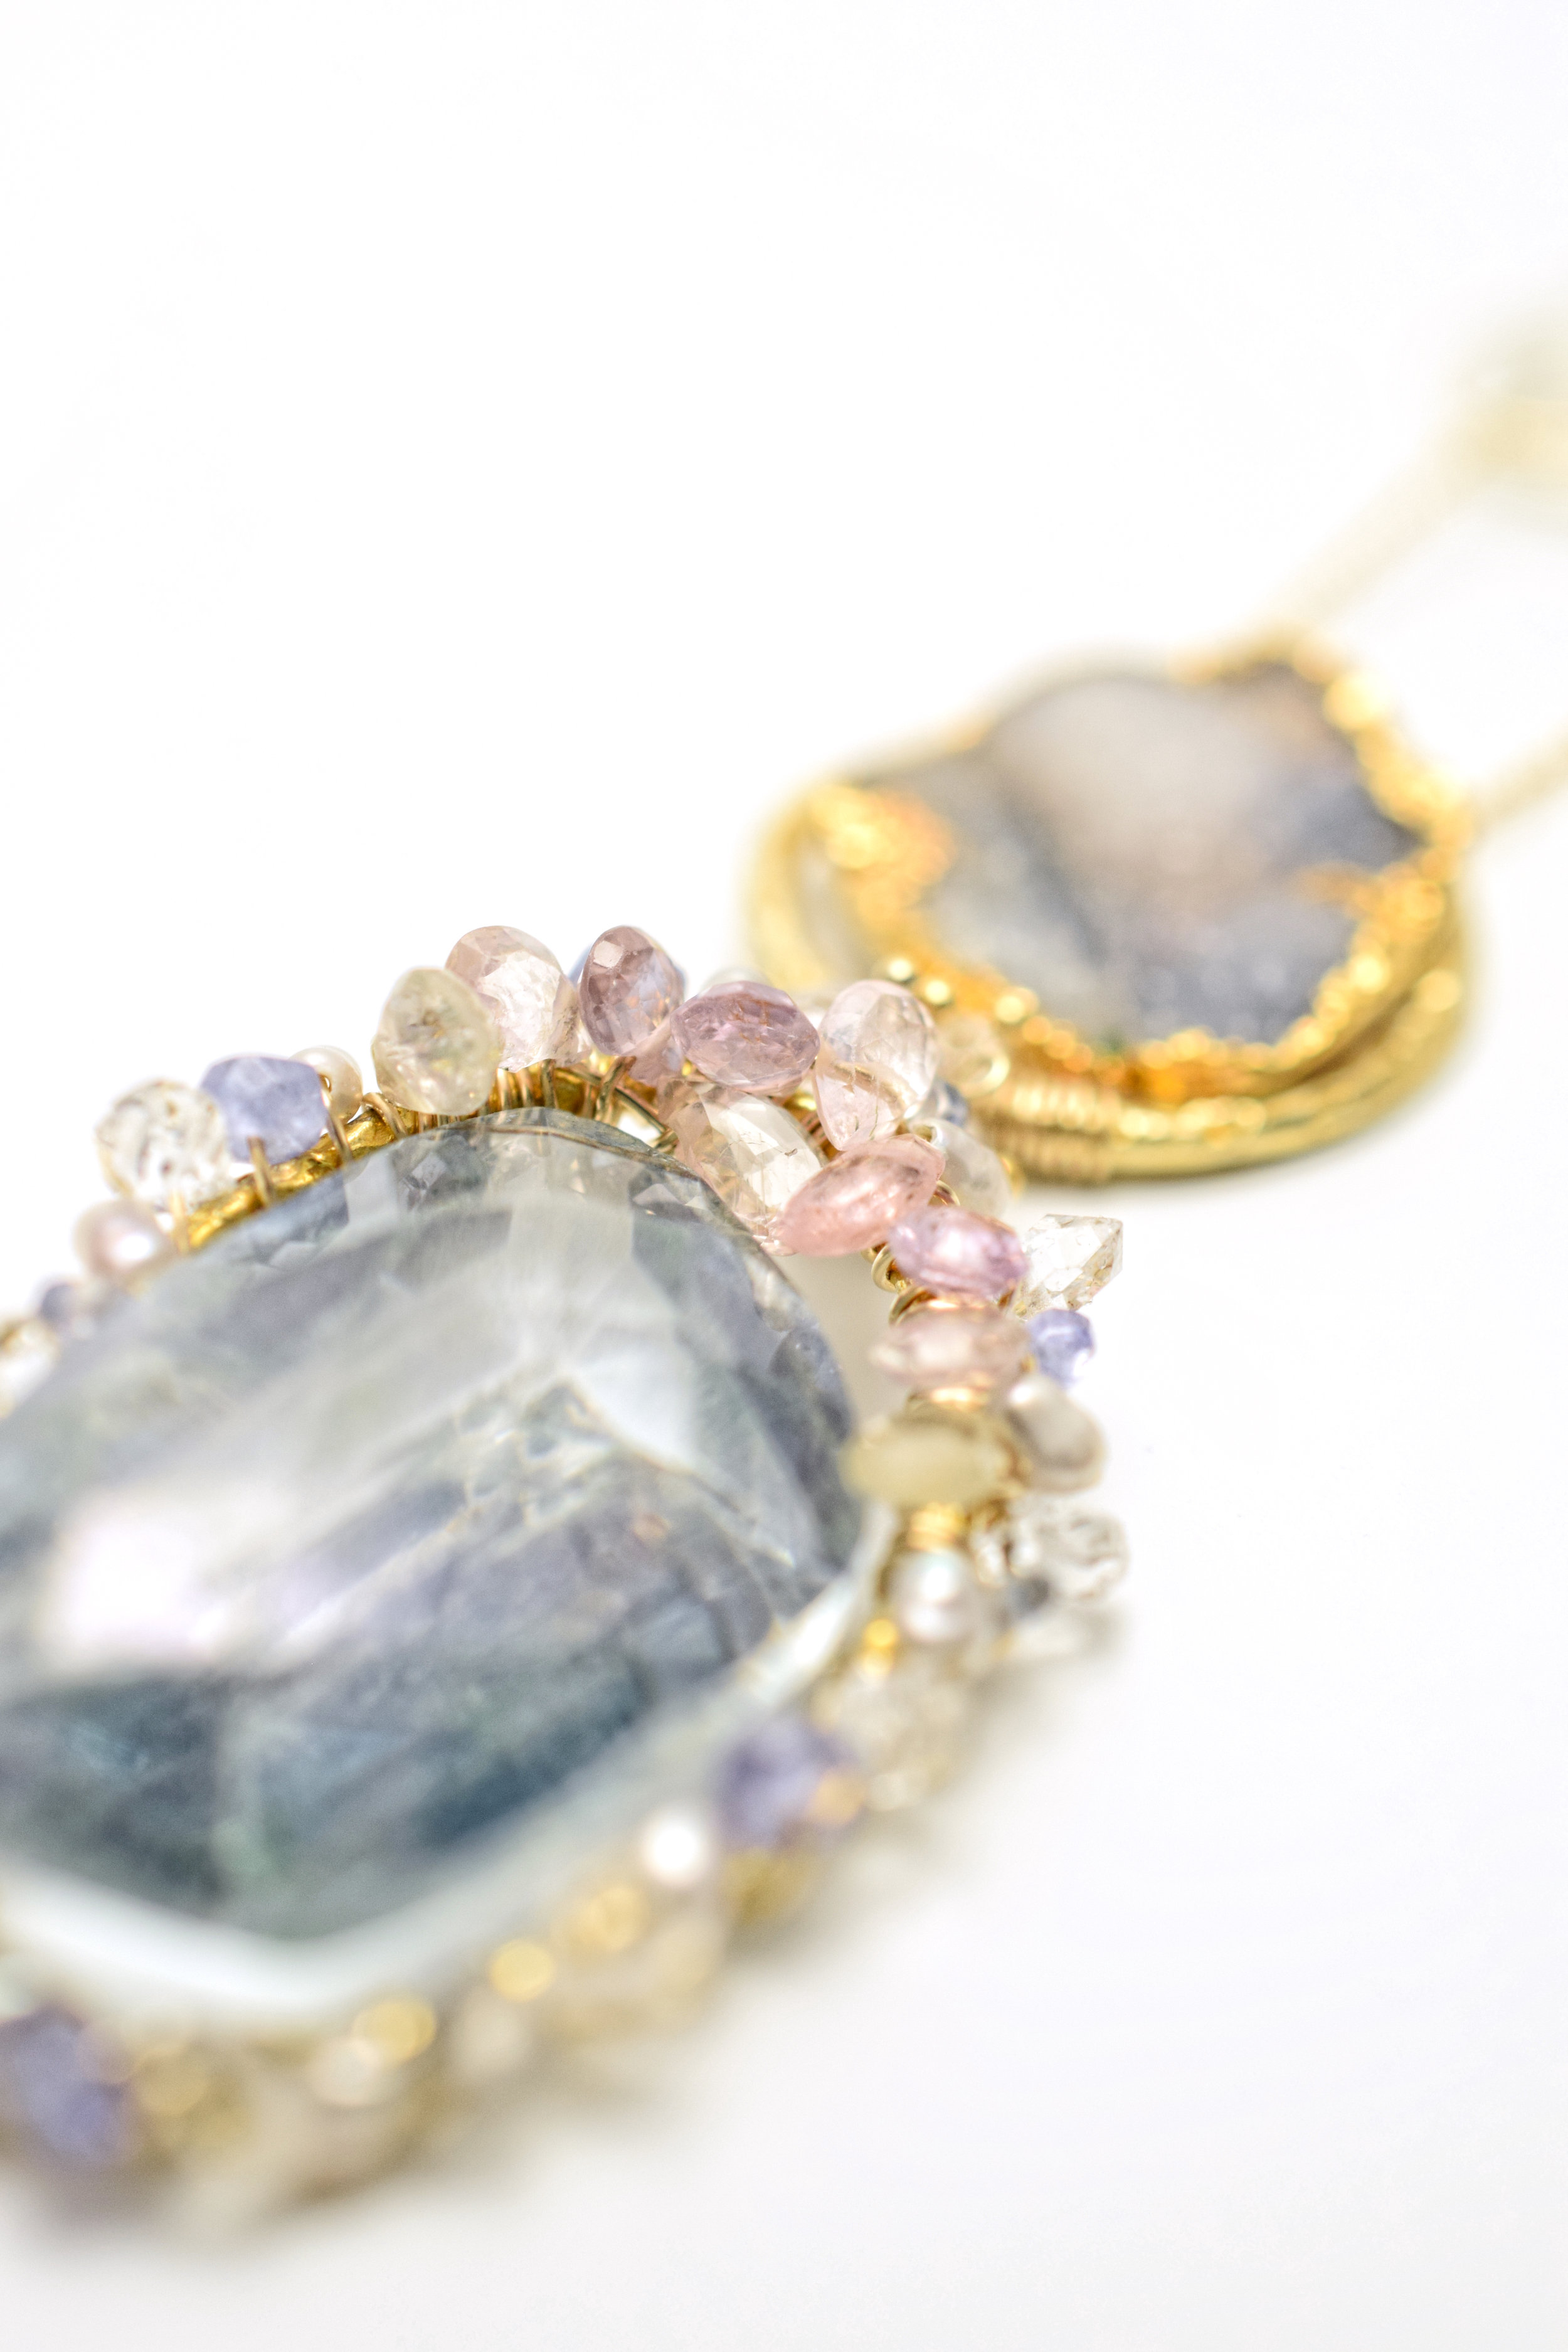 sapphire and druzy pendant necklace